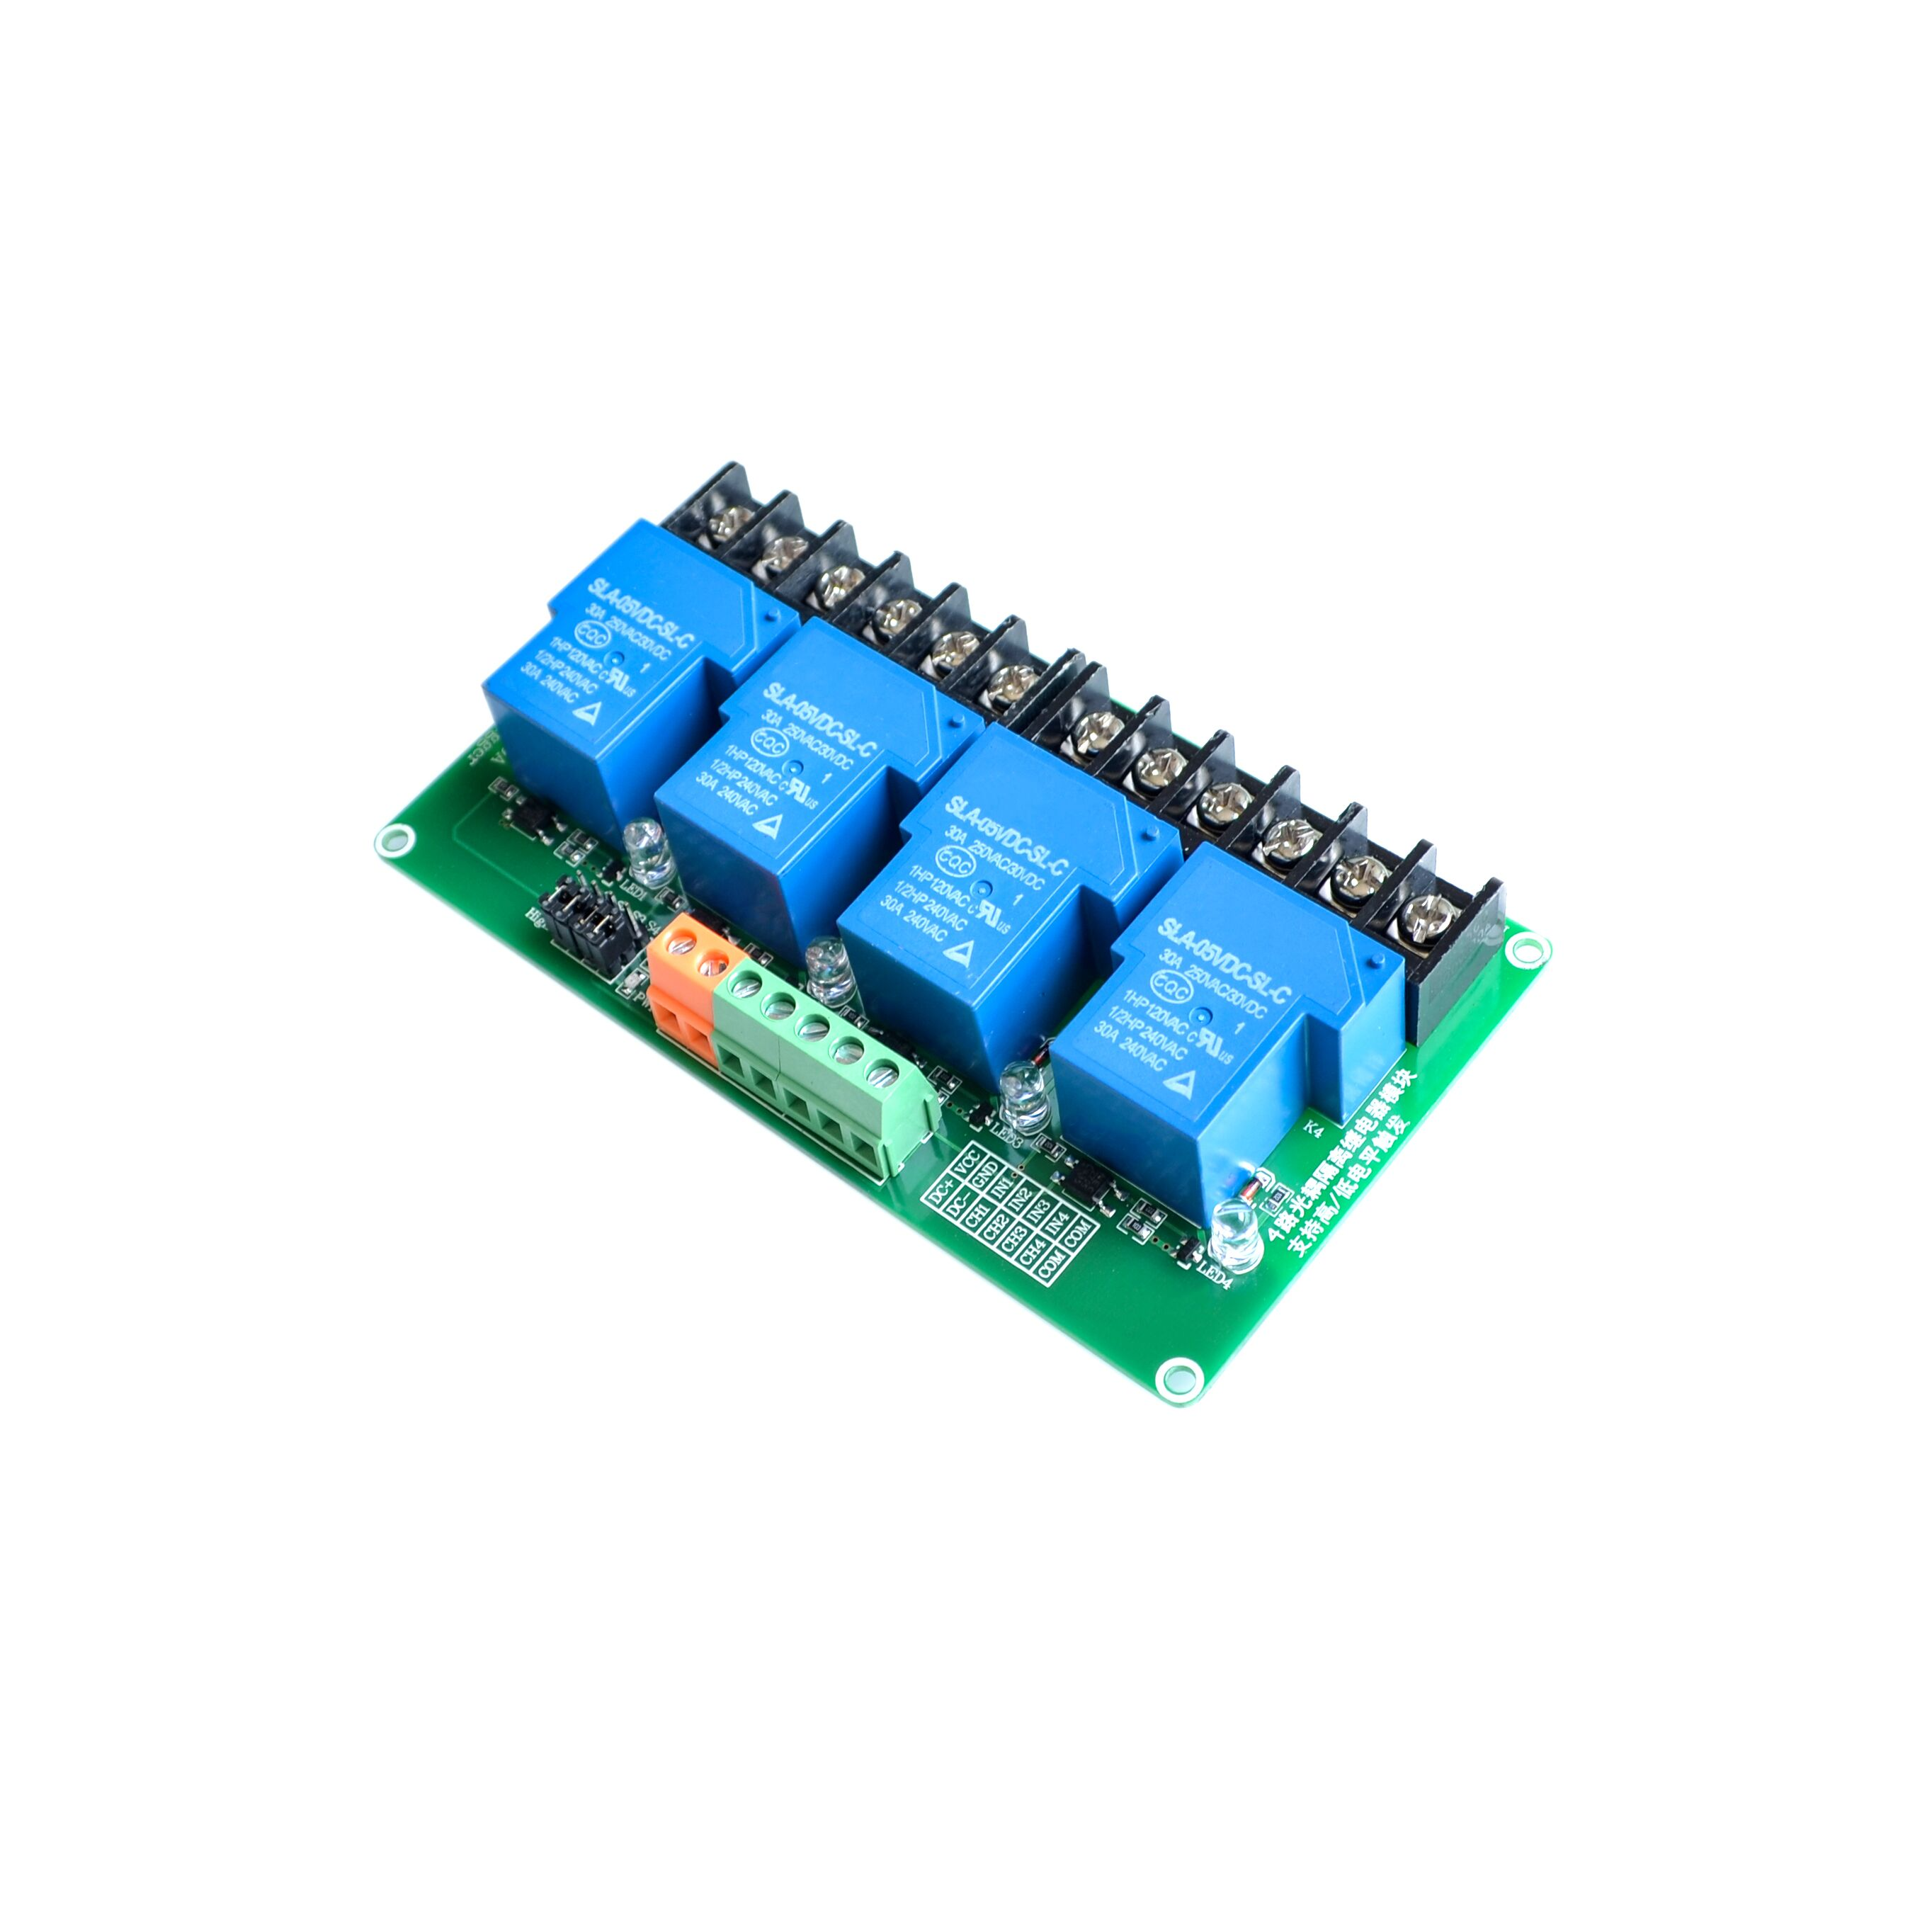 four 4 channel relay module 30A with optocoupler isolation 5v supports high and low Triger trigger for Smart homefour 4 channel relay module 30A with optocoupler isolation 5v supports high and low Triger trigger for Smart home